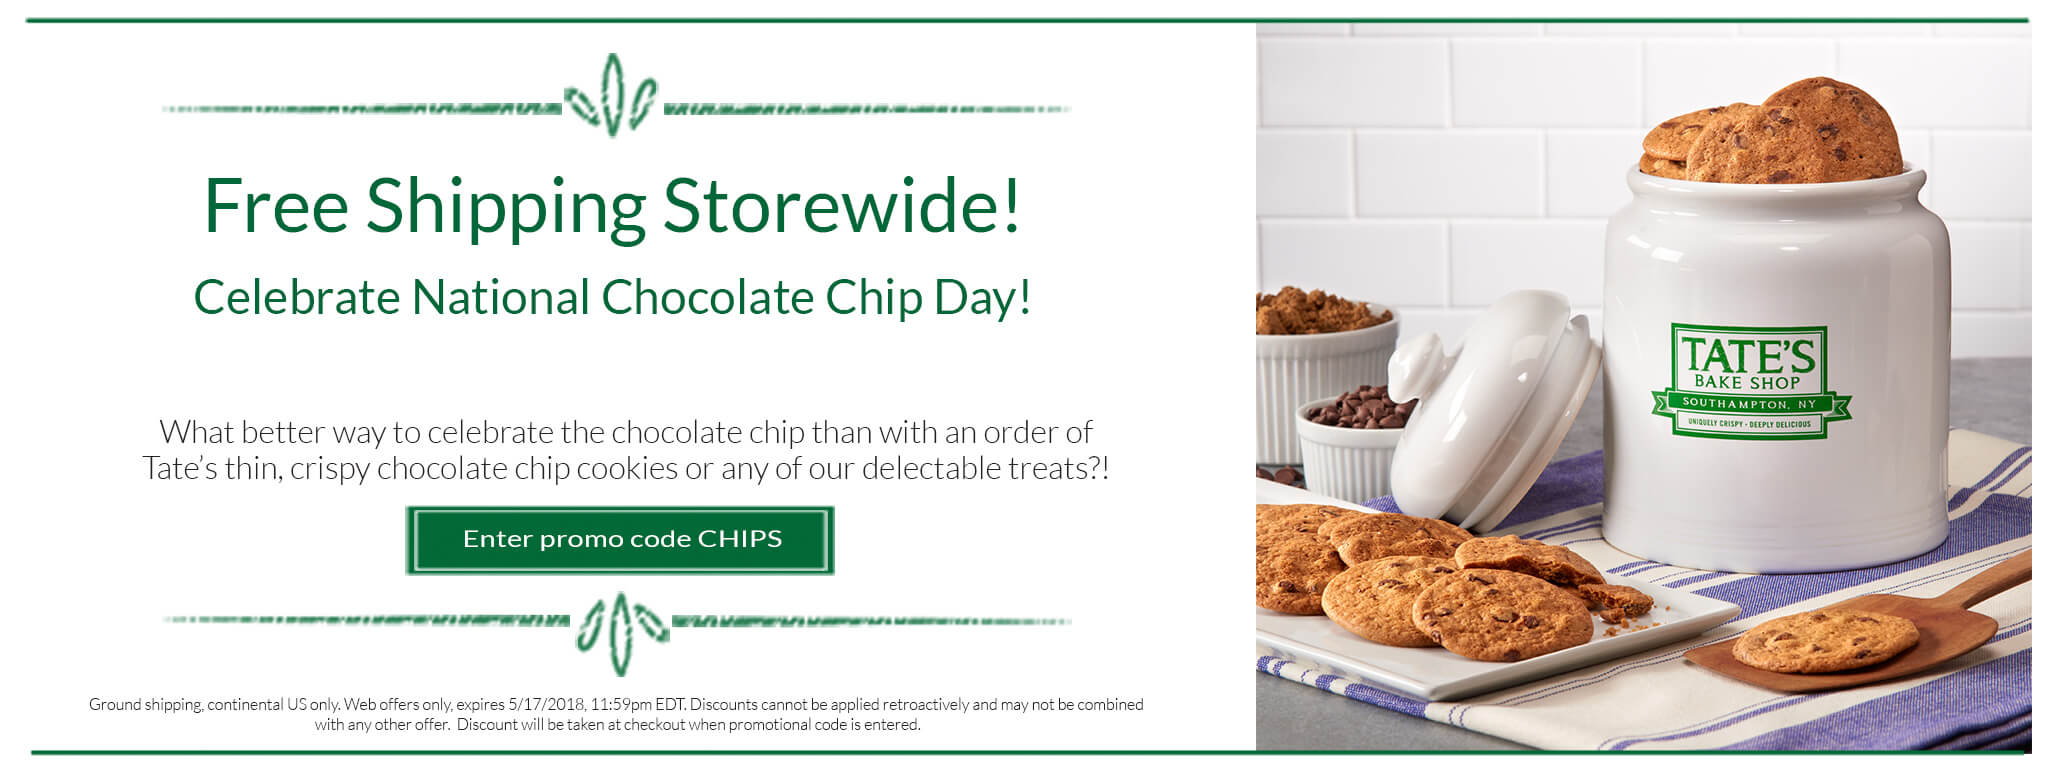 It's National Chocolate Chip Day! Free Shipping Storewide!